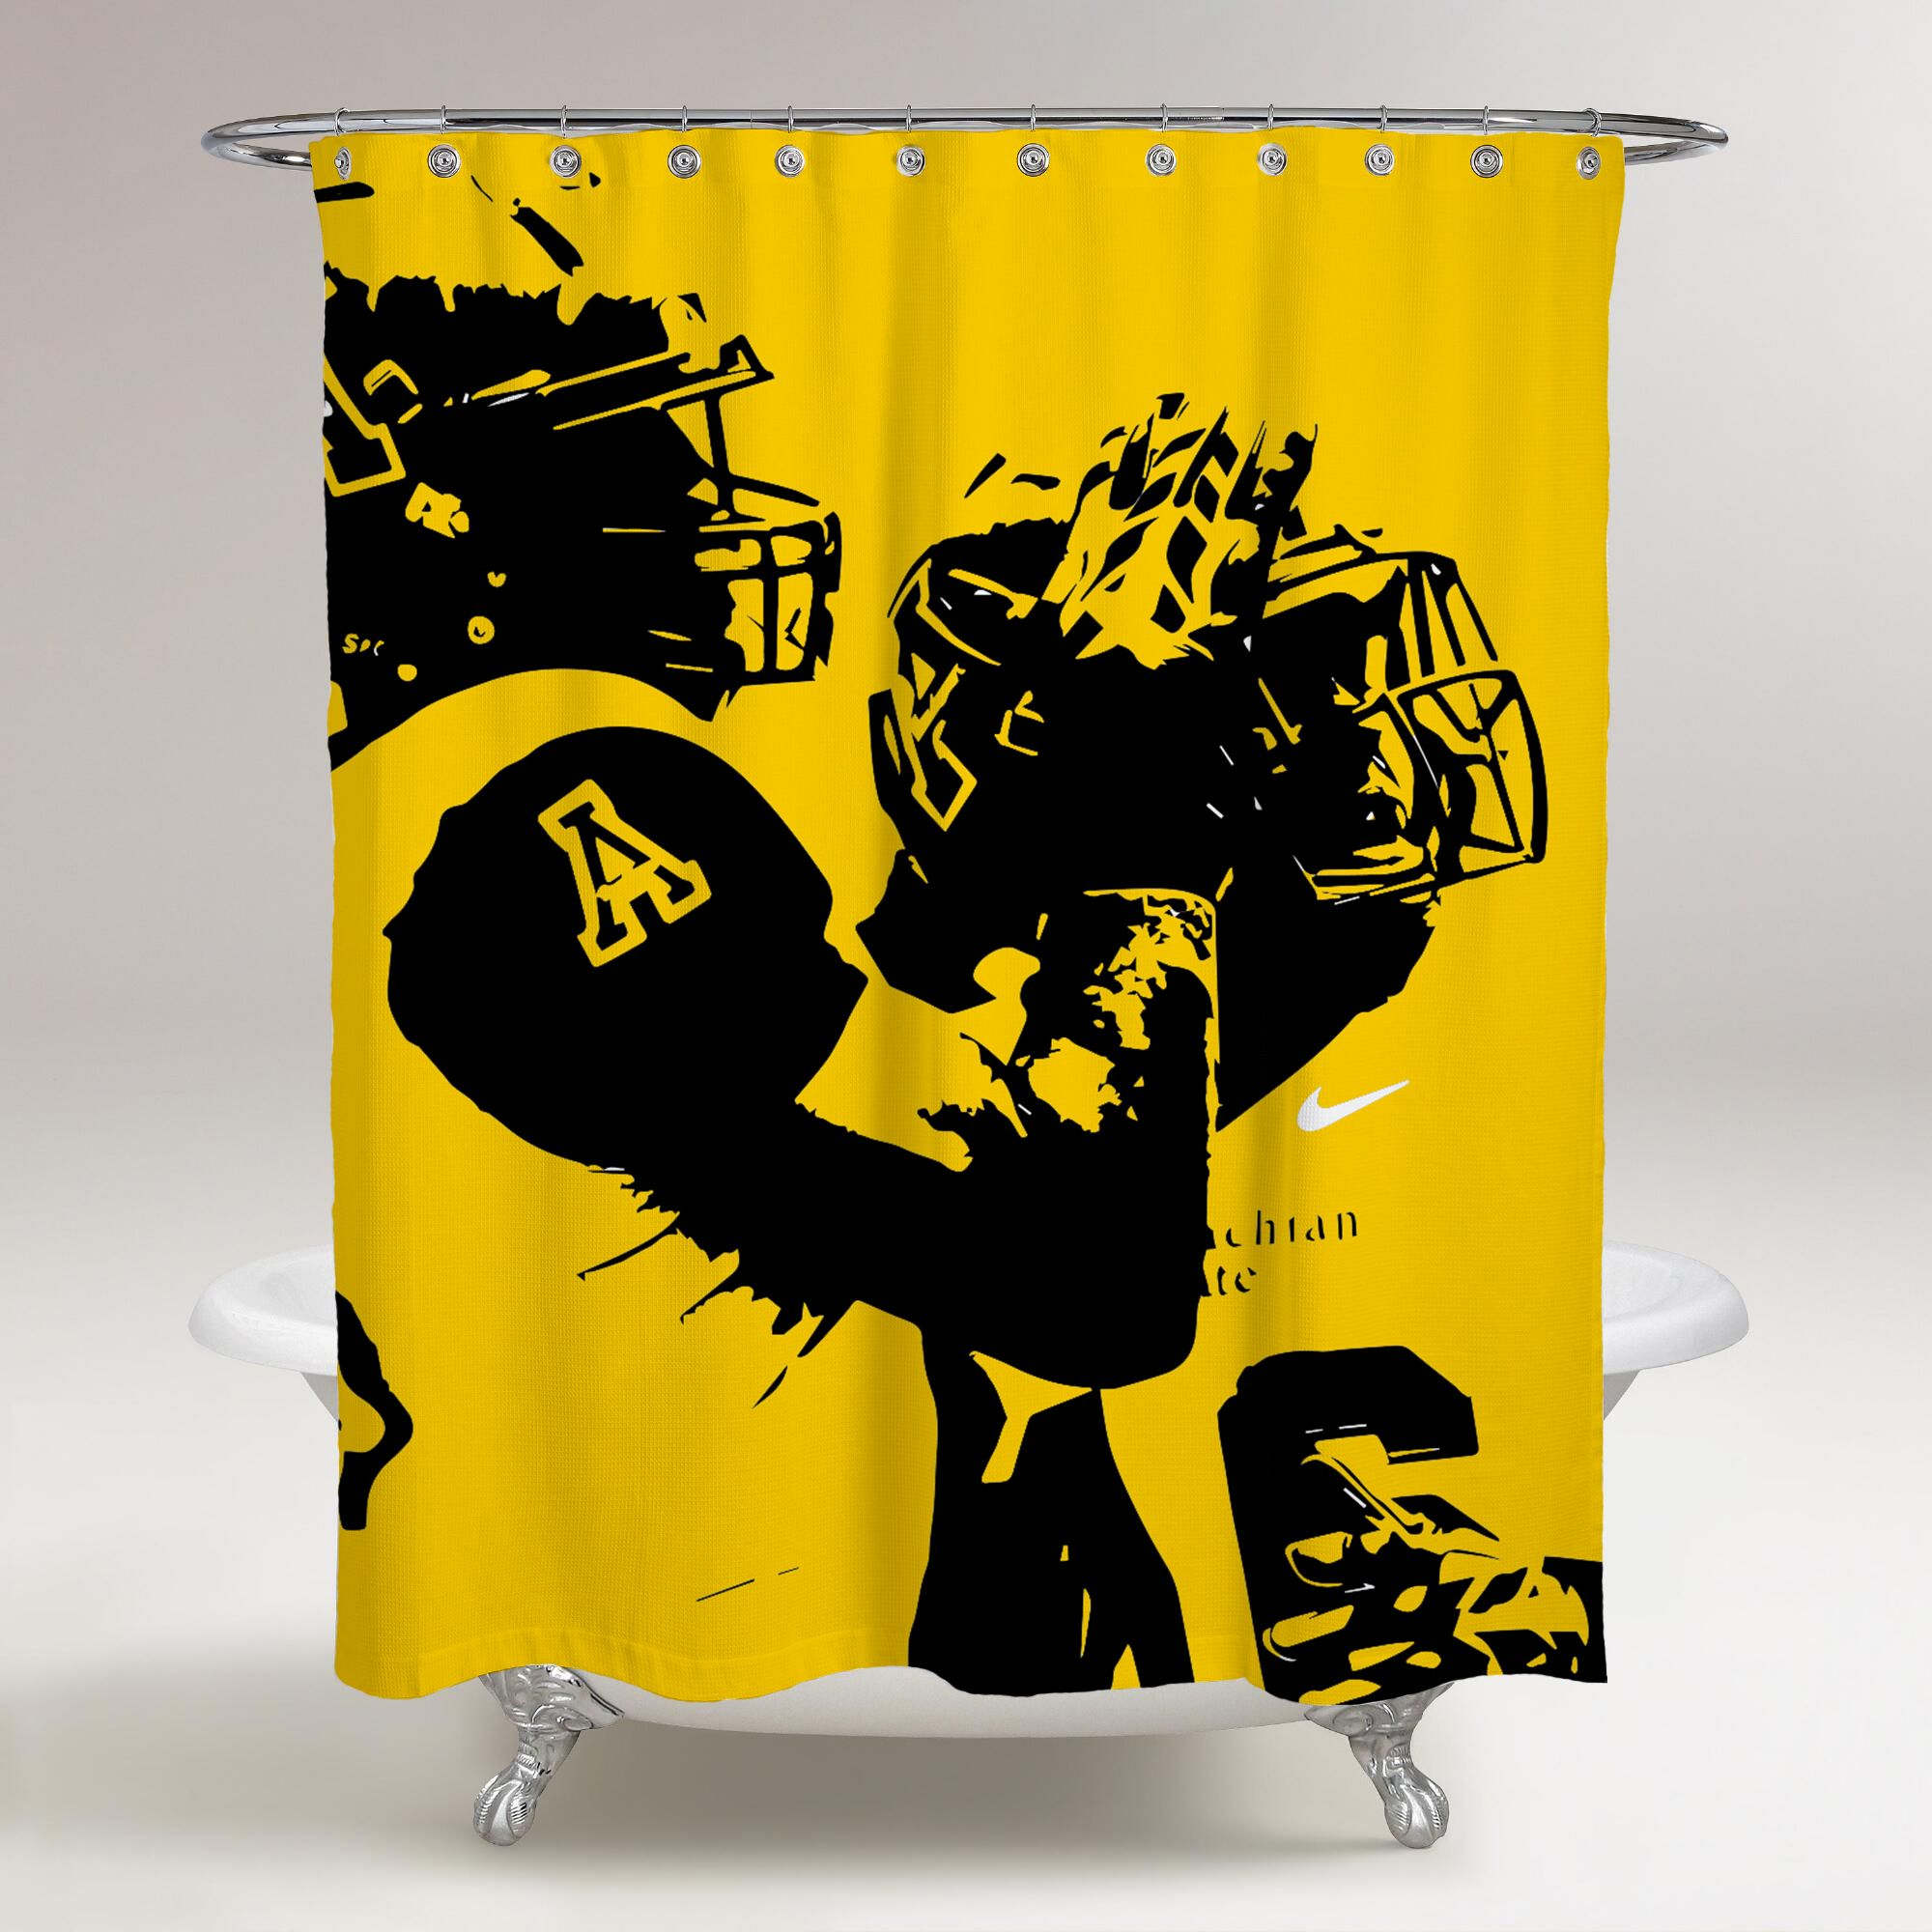 Appalachian State Mountaineers Players Wallpaper Yellow Background Printed Shower Curtain Bathro Bathroom Shower Curtains Shower Curtain Printed Shower Curtain